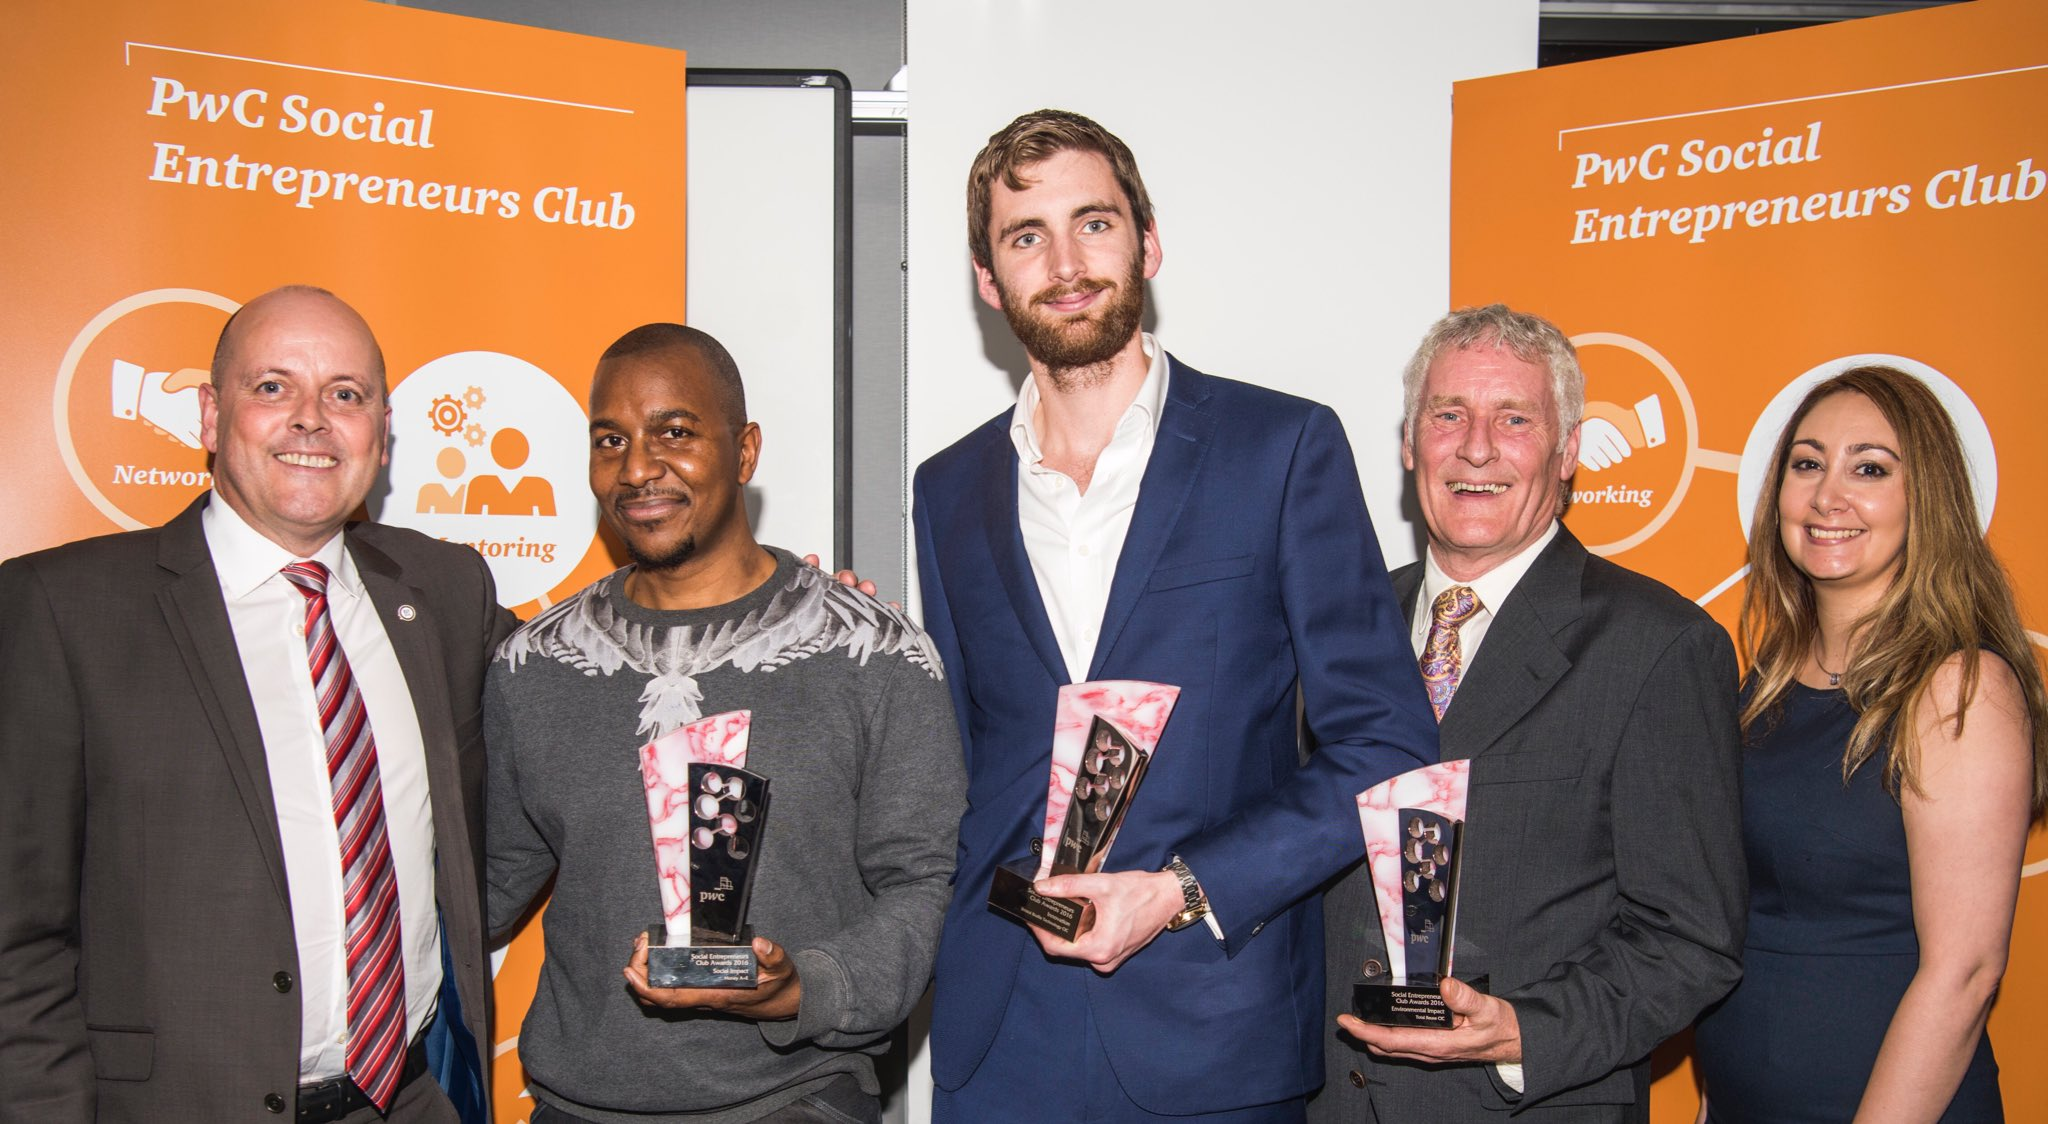 Well done #PwCSEClub Awards 2016 winners! Inspired by the     impact our members are having in their communities @PwC_UK @GEWUK #SocEnt https://t.co/HscdM8HD6l